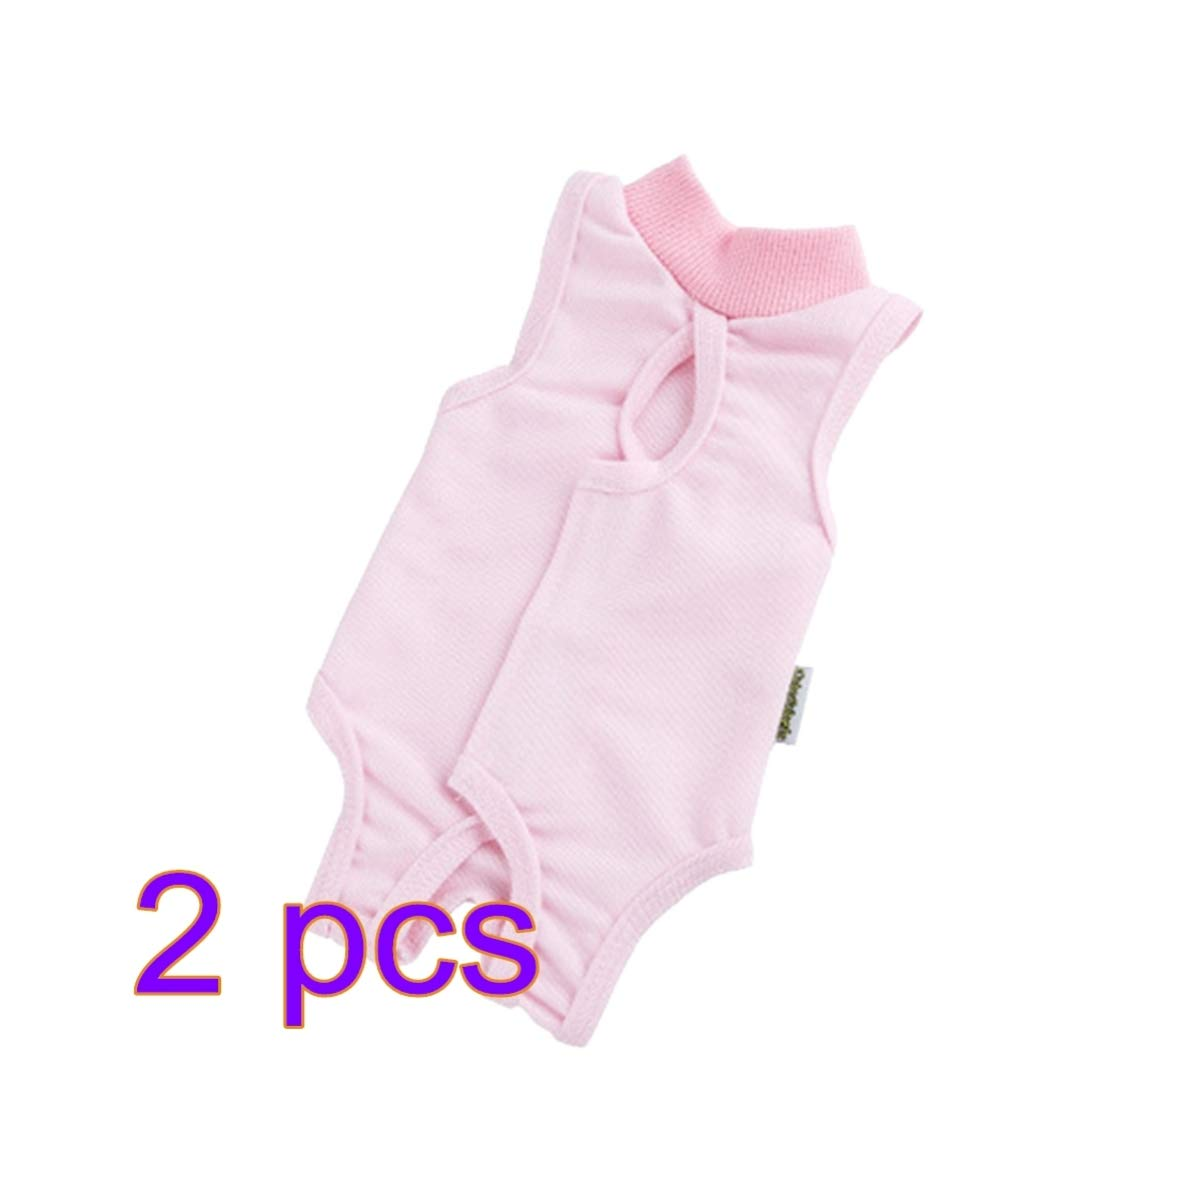 POPETPOP 2Pcs Cat Recovery Suit Surgery, Anti-Lick Kitten Medical Jumpsuit, Pet Jumpsuit for Cats Dogs Weaning Keep Warm - Size M (Pink) by POPETPOP